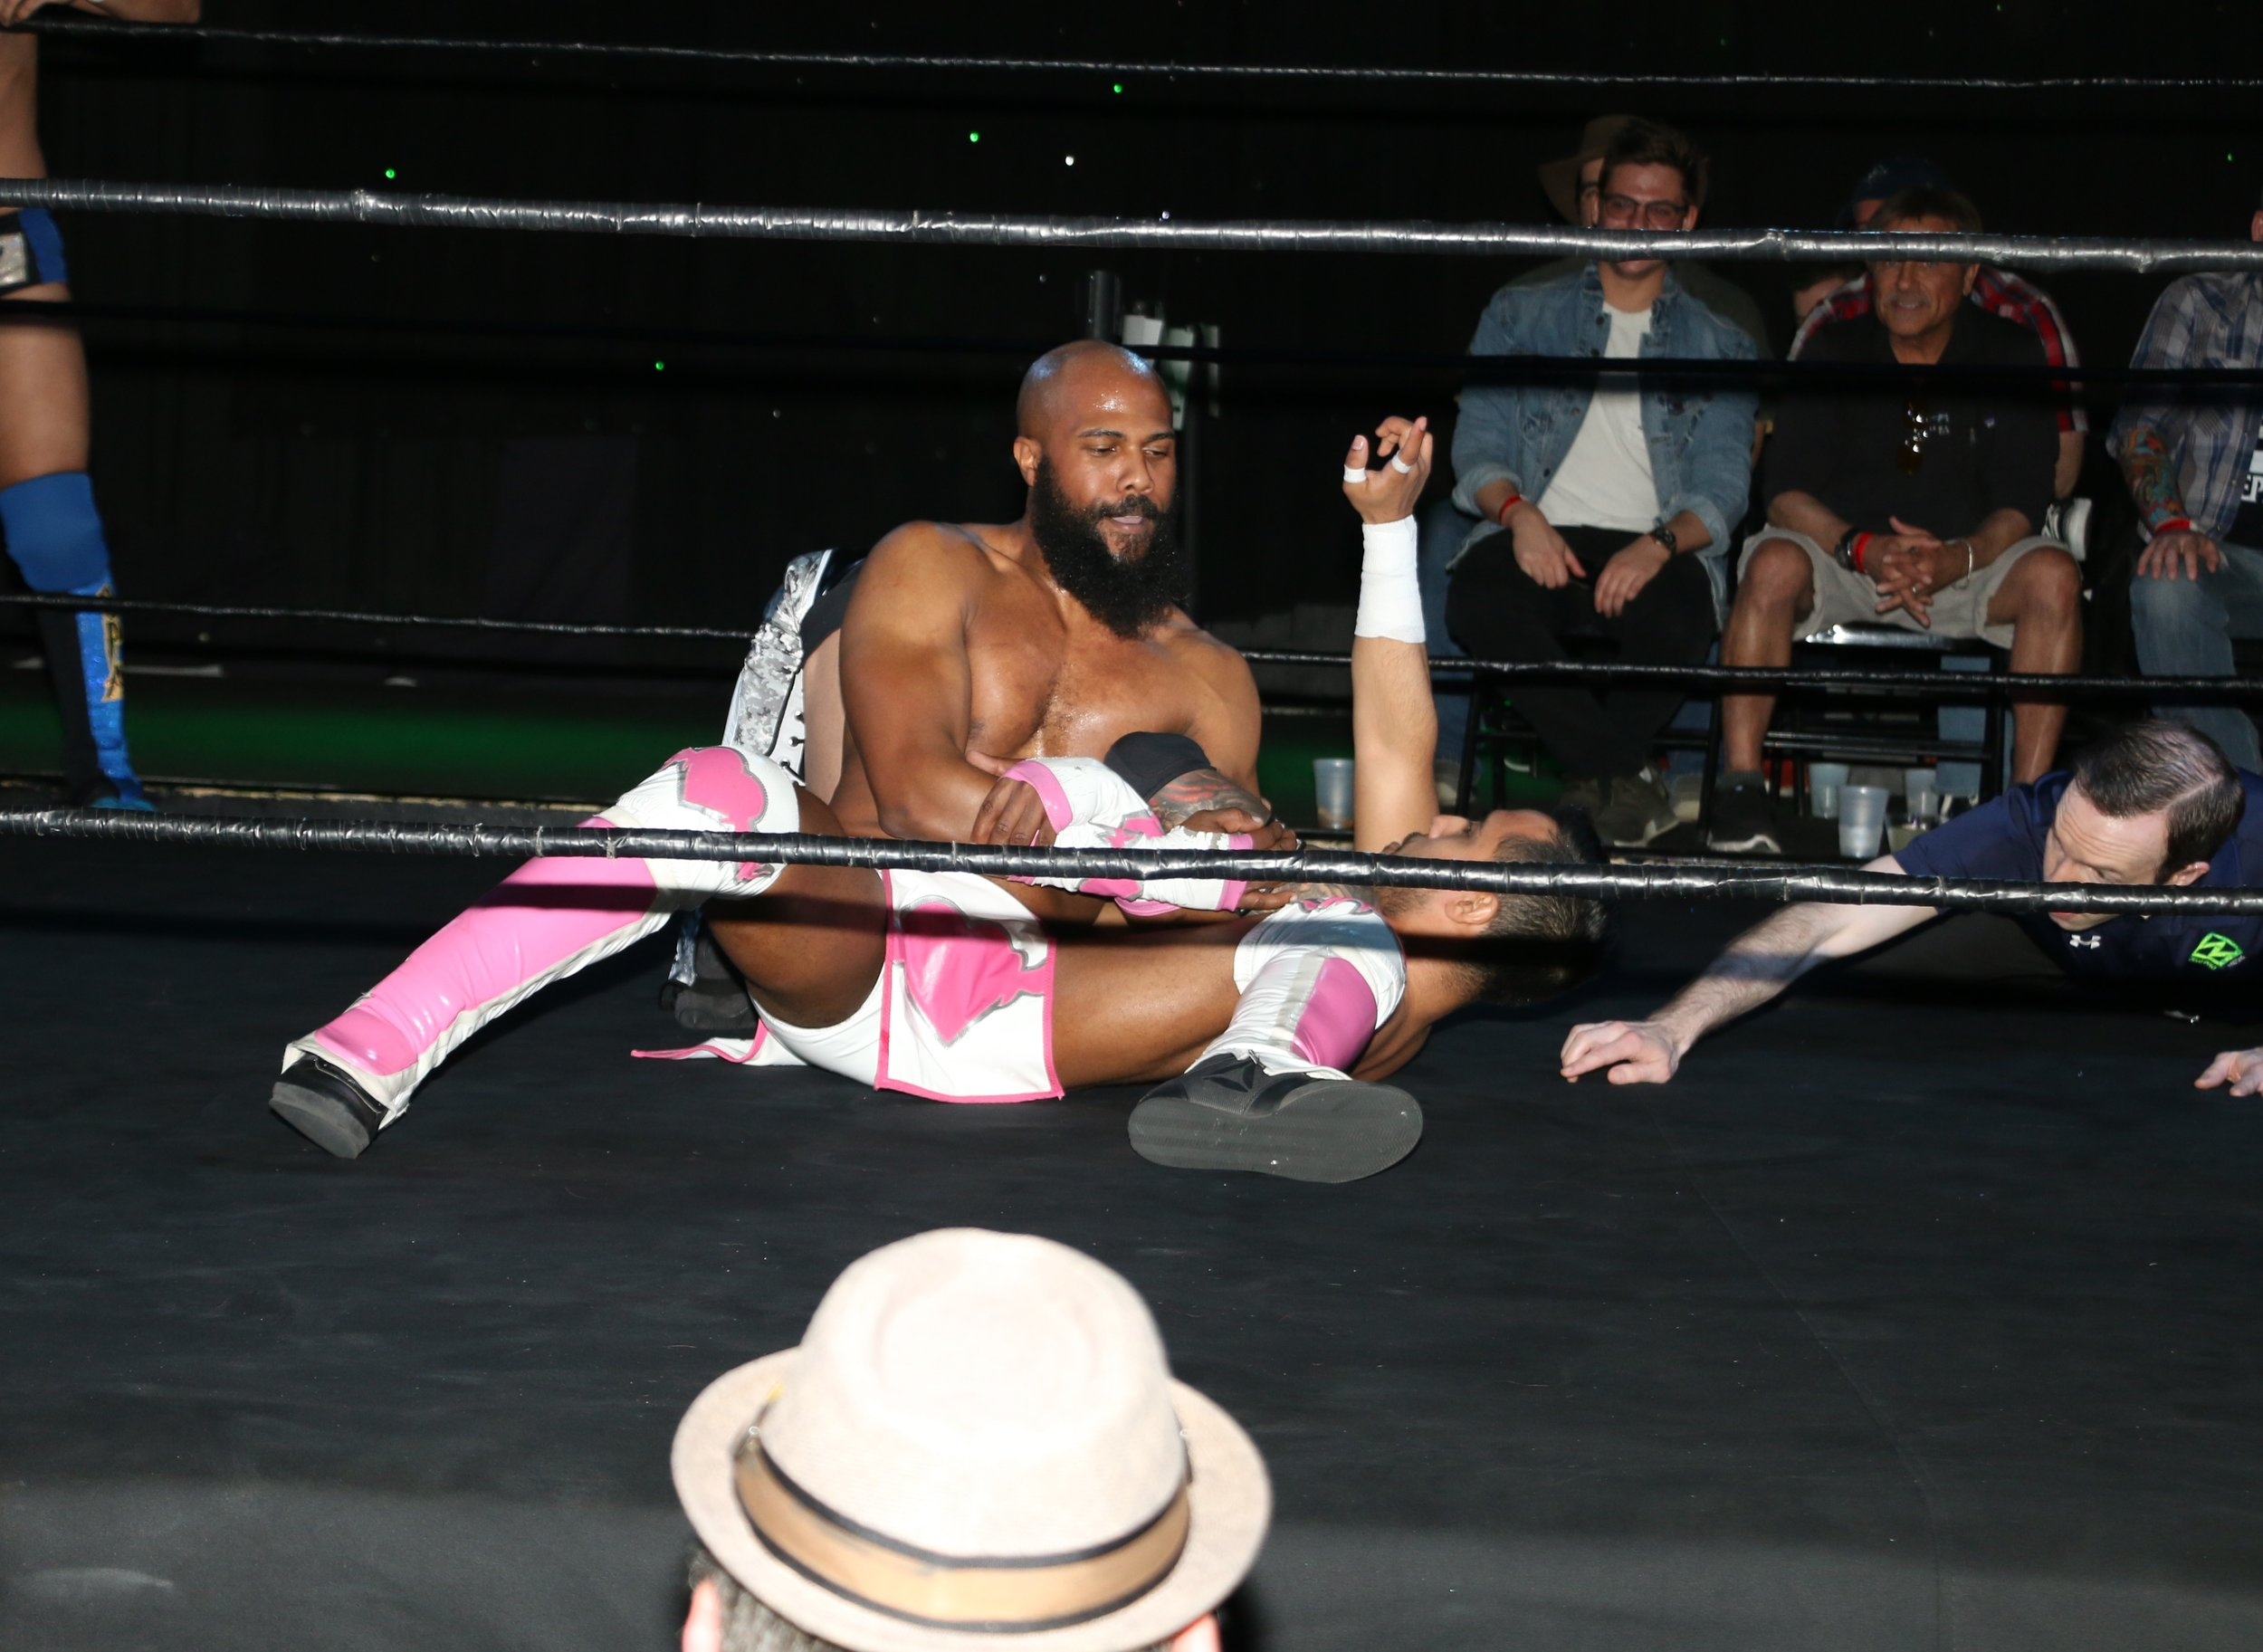 Bryce Benjamin controls Isaias Velazquez during the tag team match.